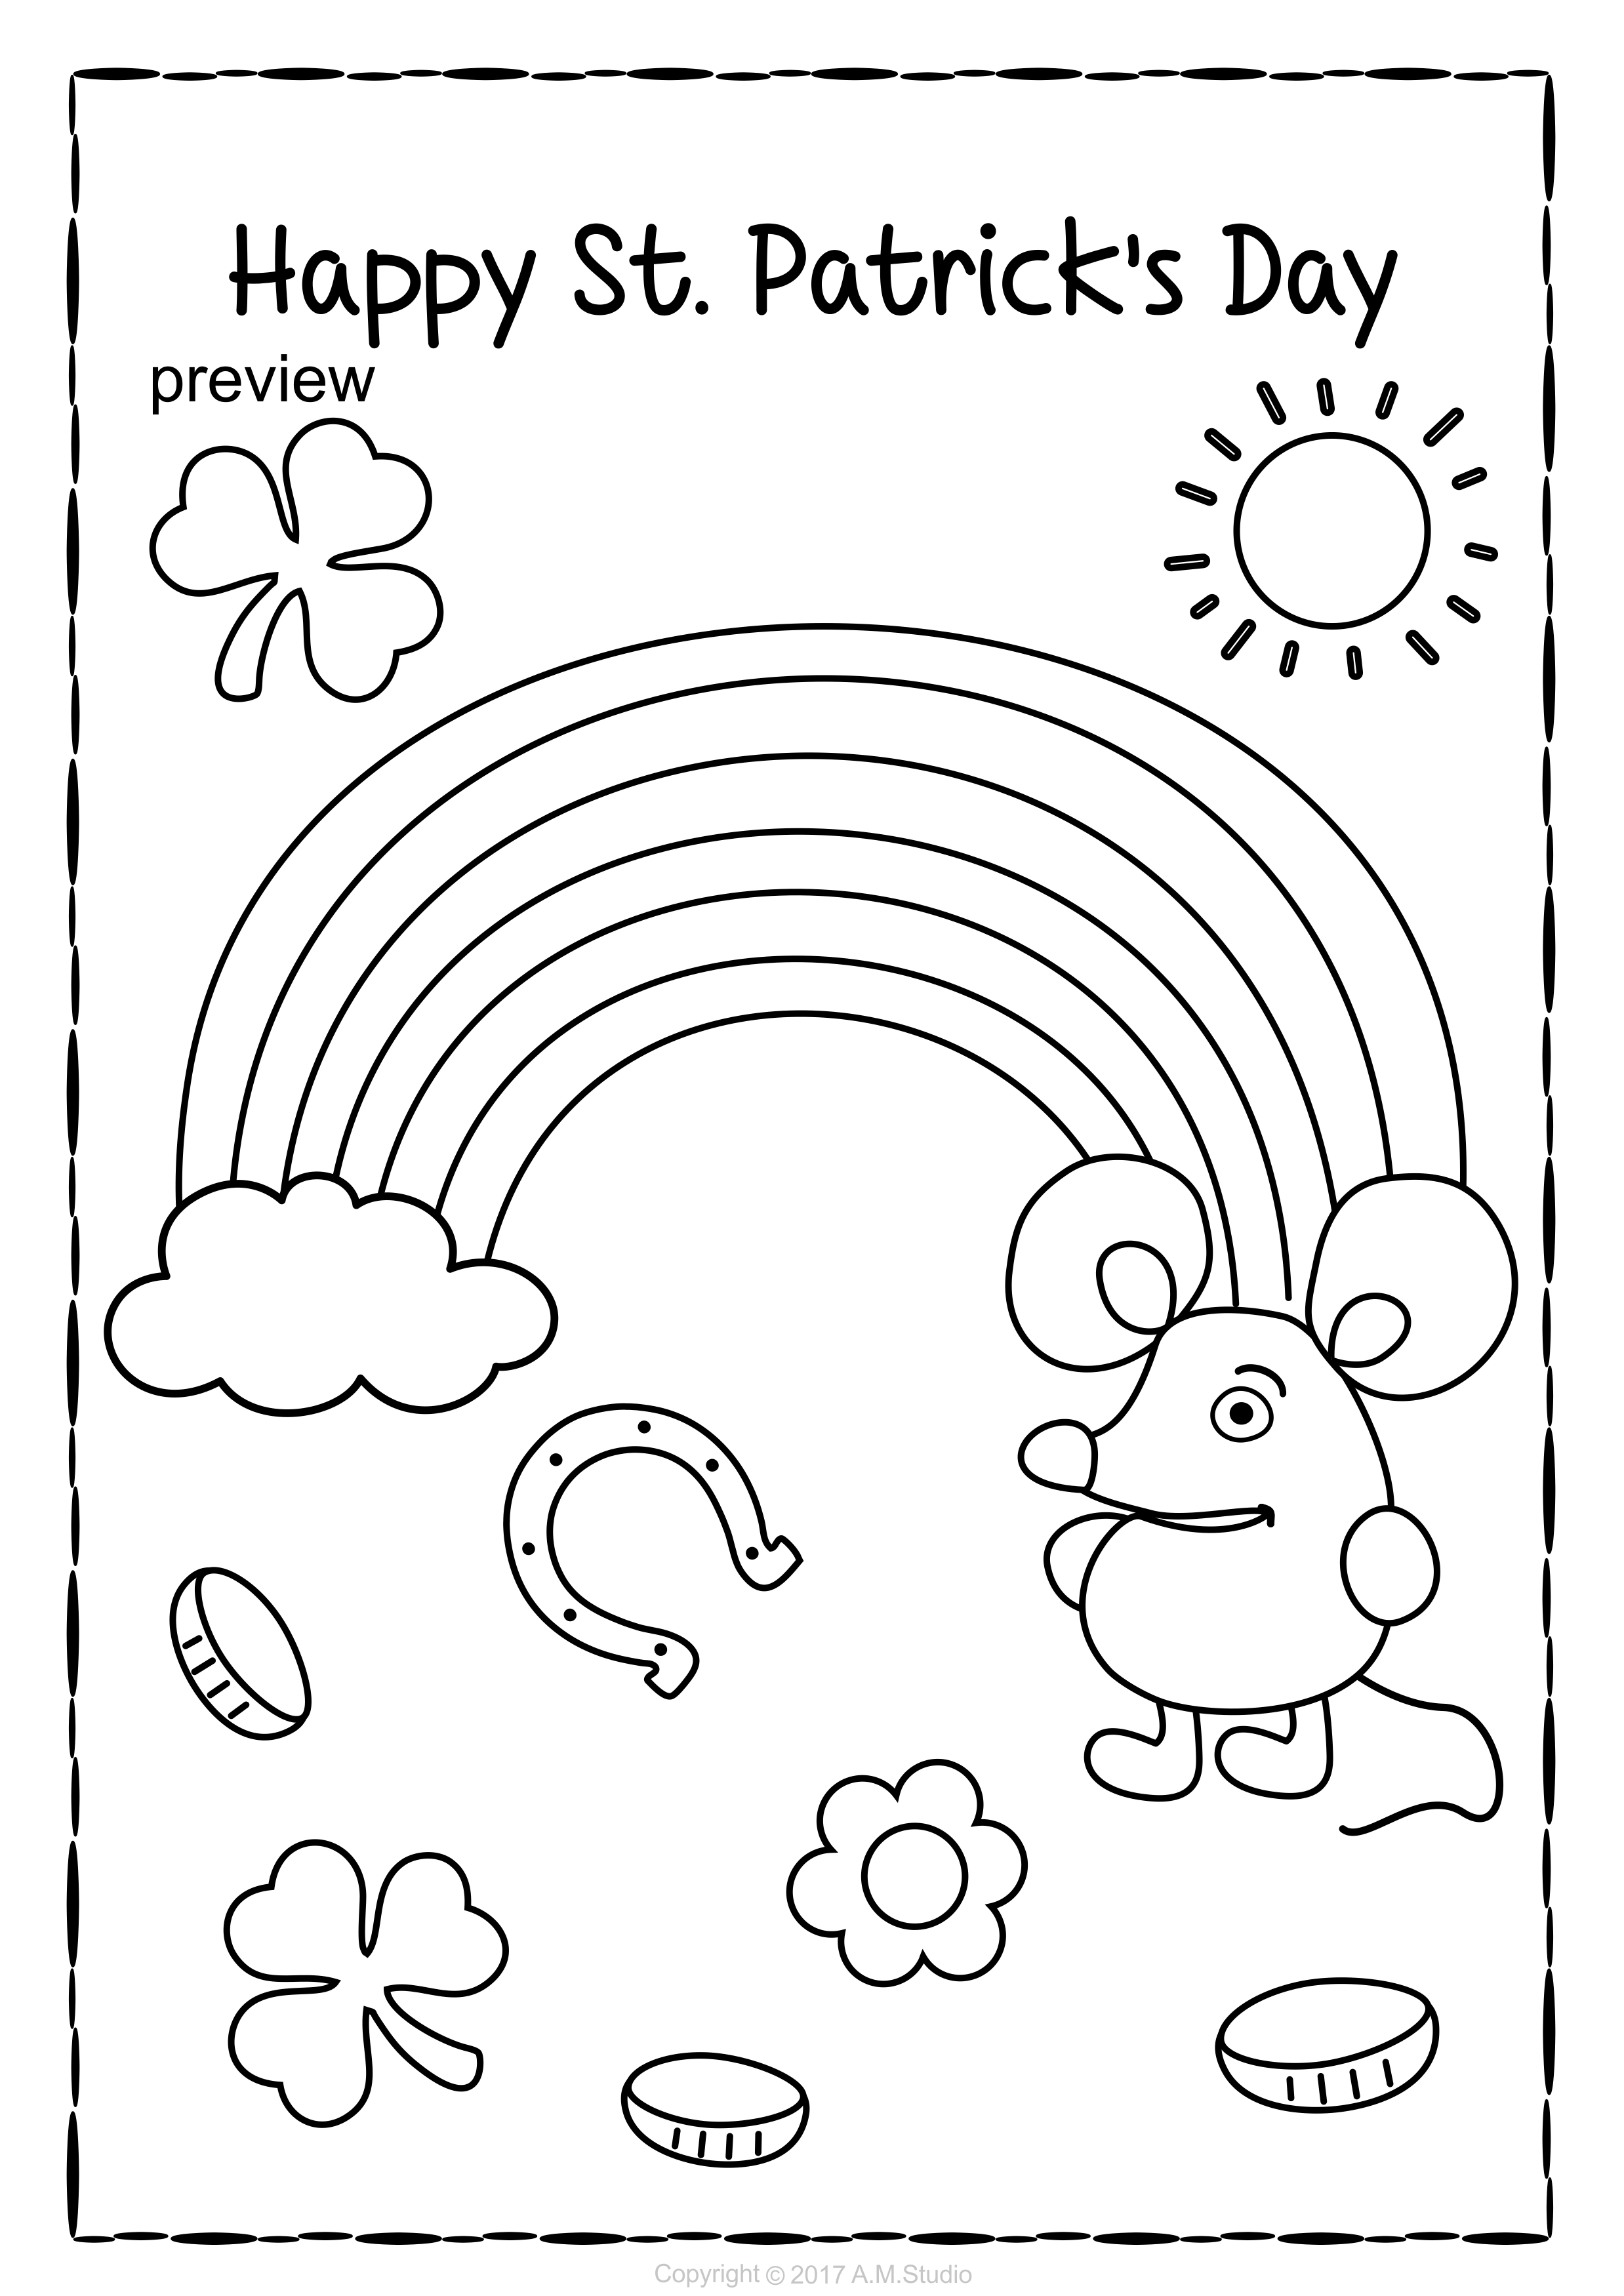 St Patrick S Day Coloring Pages Coloring Pages Color Spring Colors [ 3501 x 2476 Pixel ]